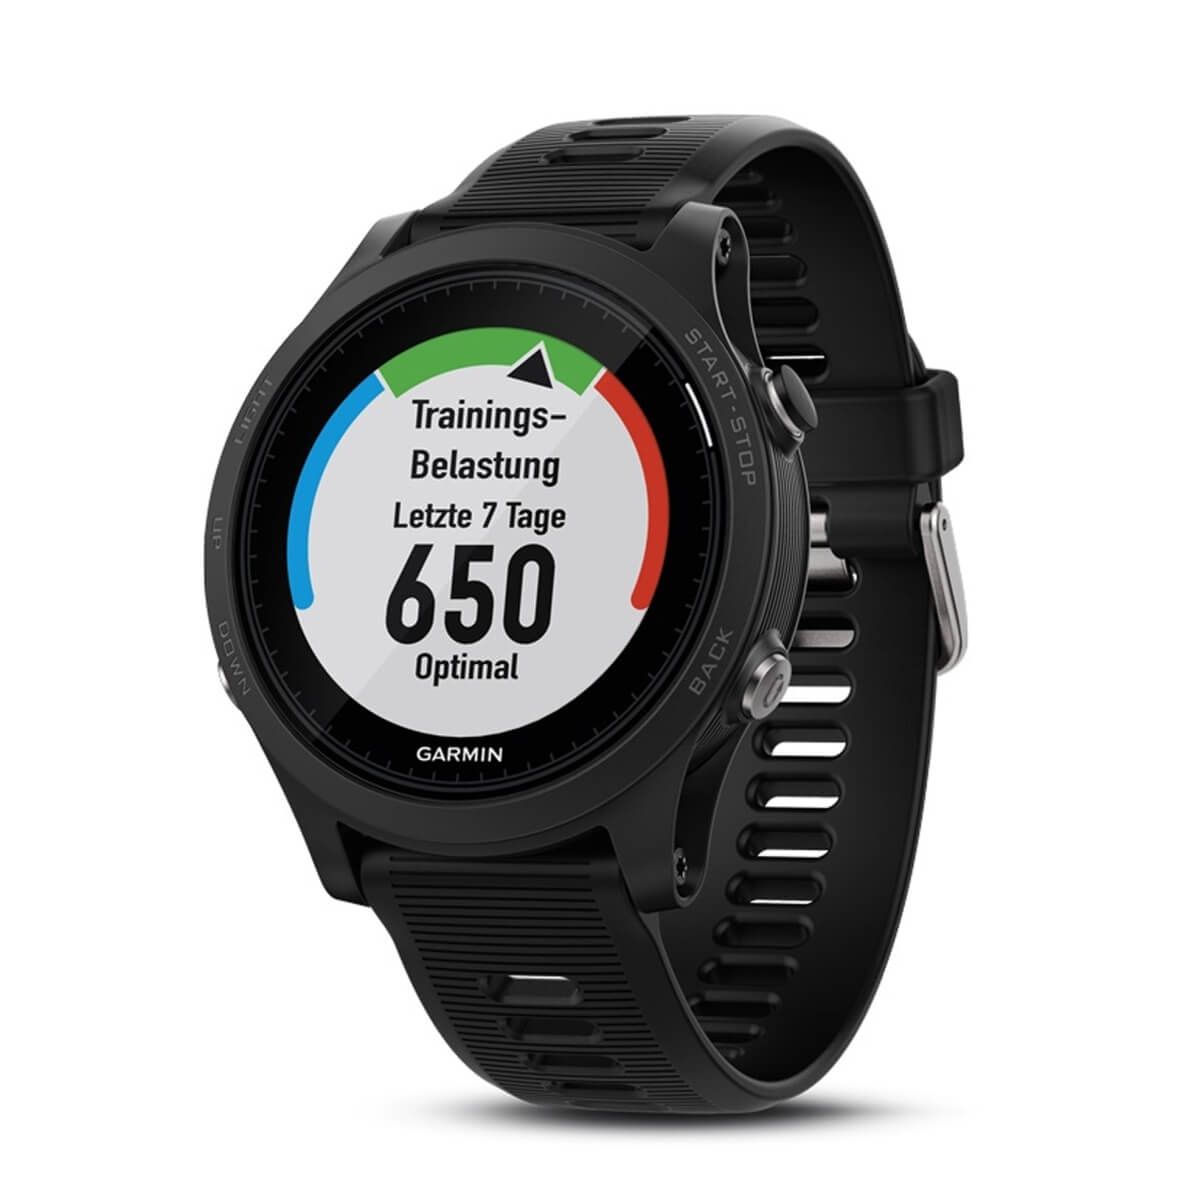 garmin forerunner 935 multisport gps uhr f r triathleten. Black Bedroom Furniture Sets. Home Design Ideas